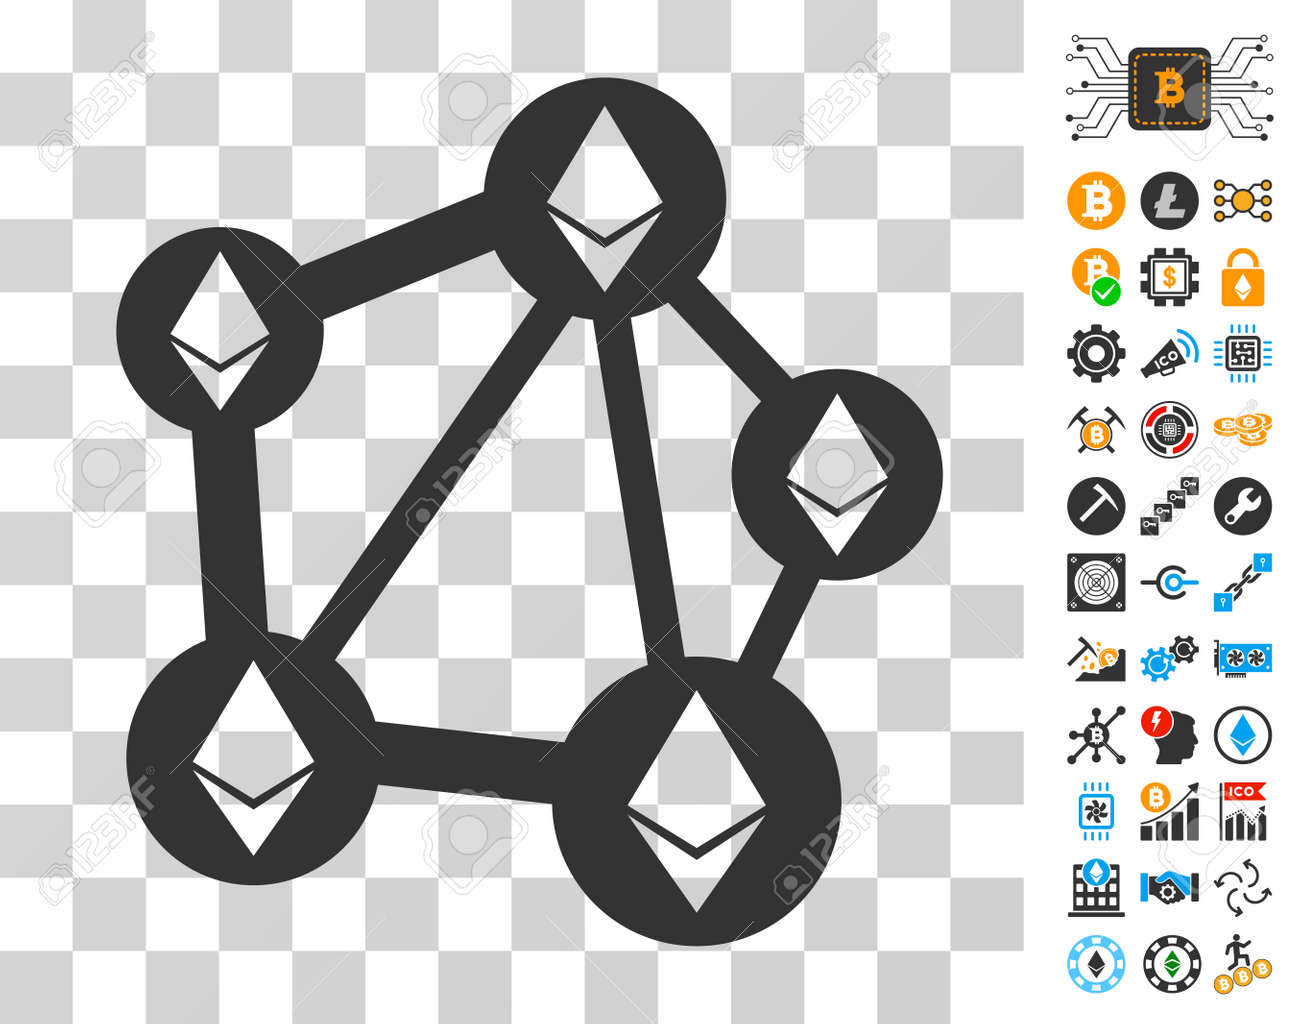 Ethereum Network Icon With Bonus Bitcoin Mining And Blockchain Pictographs Vector Illustration Style Is Flat